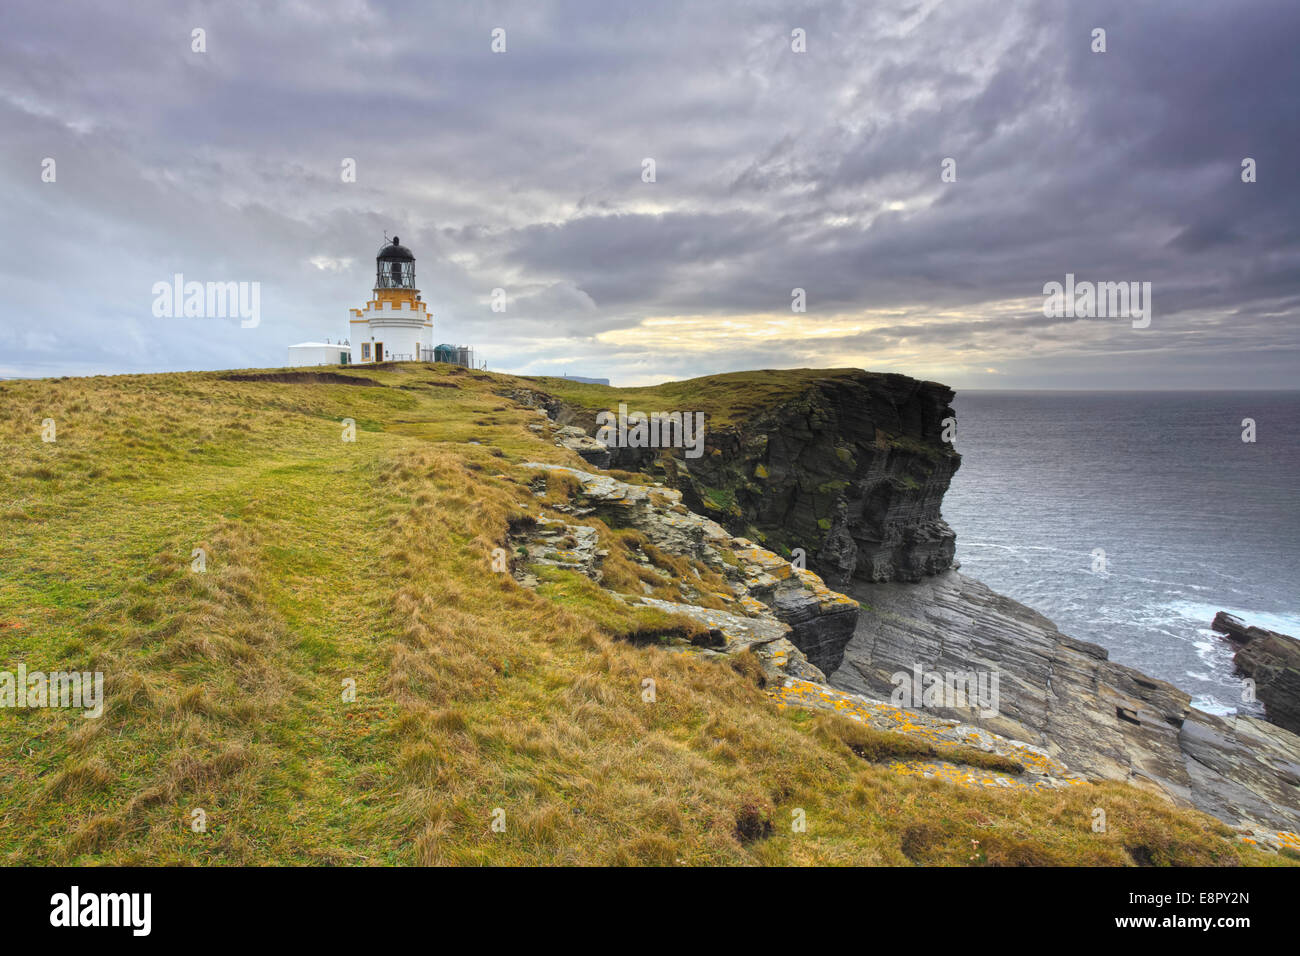 The Brough of Birsay Lighthouse on Mainland Orkney Stock Photo